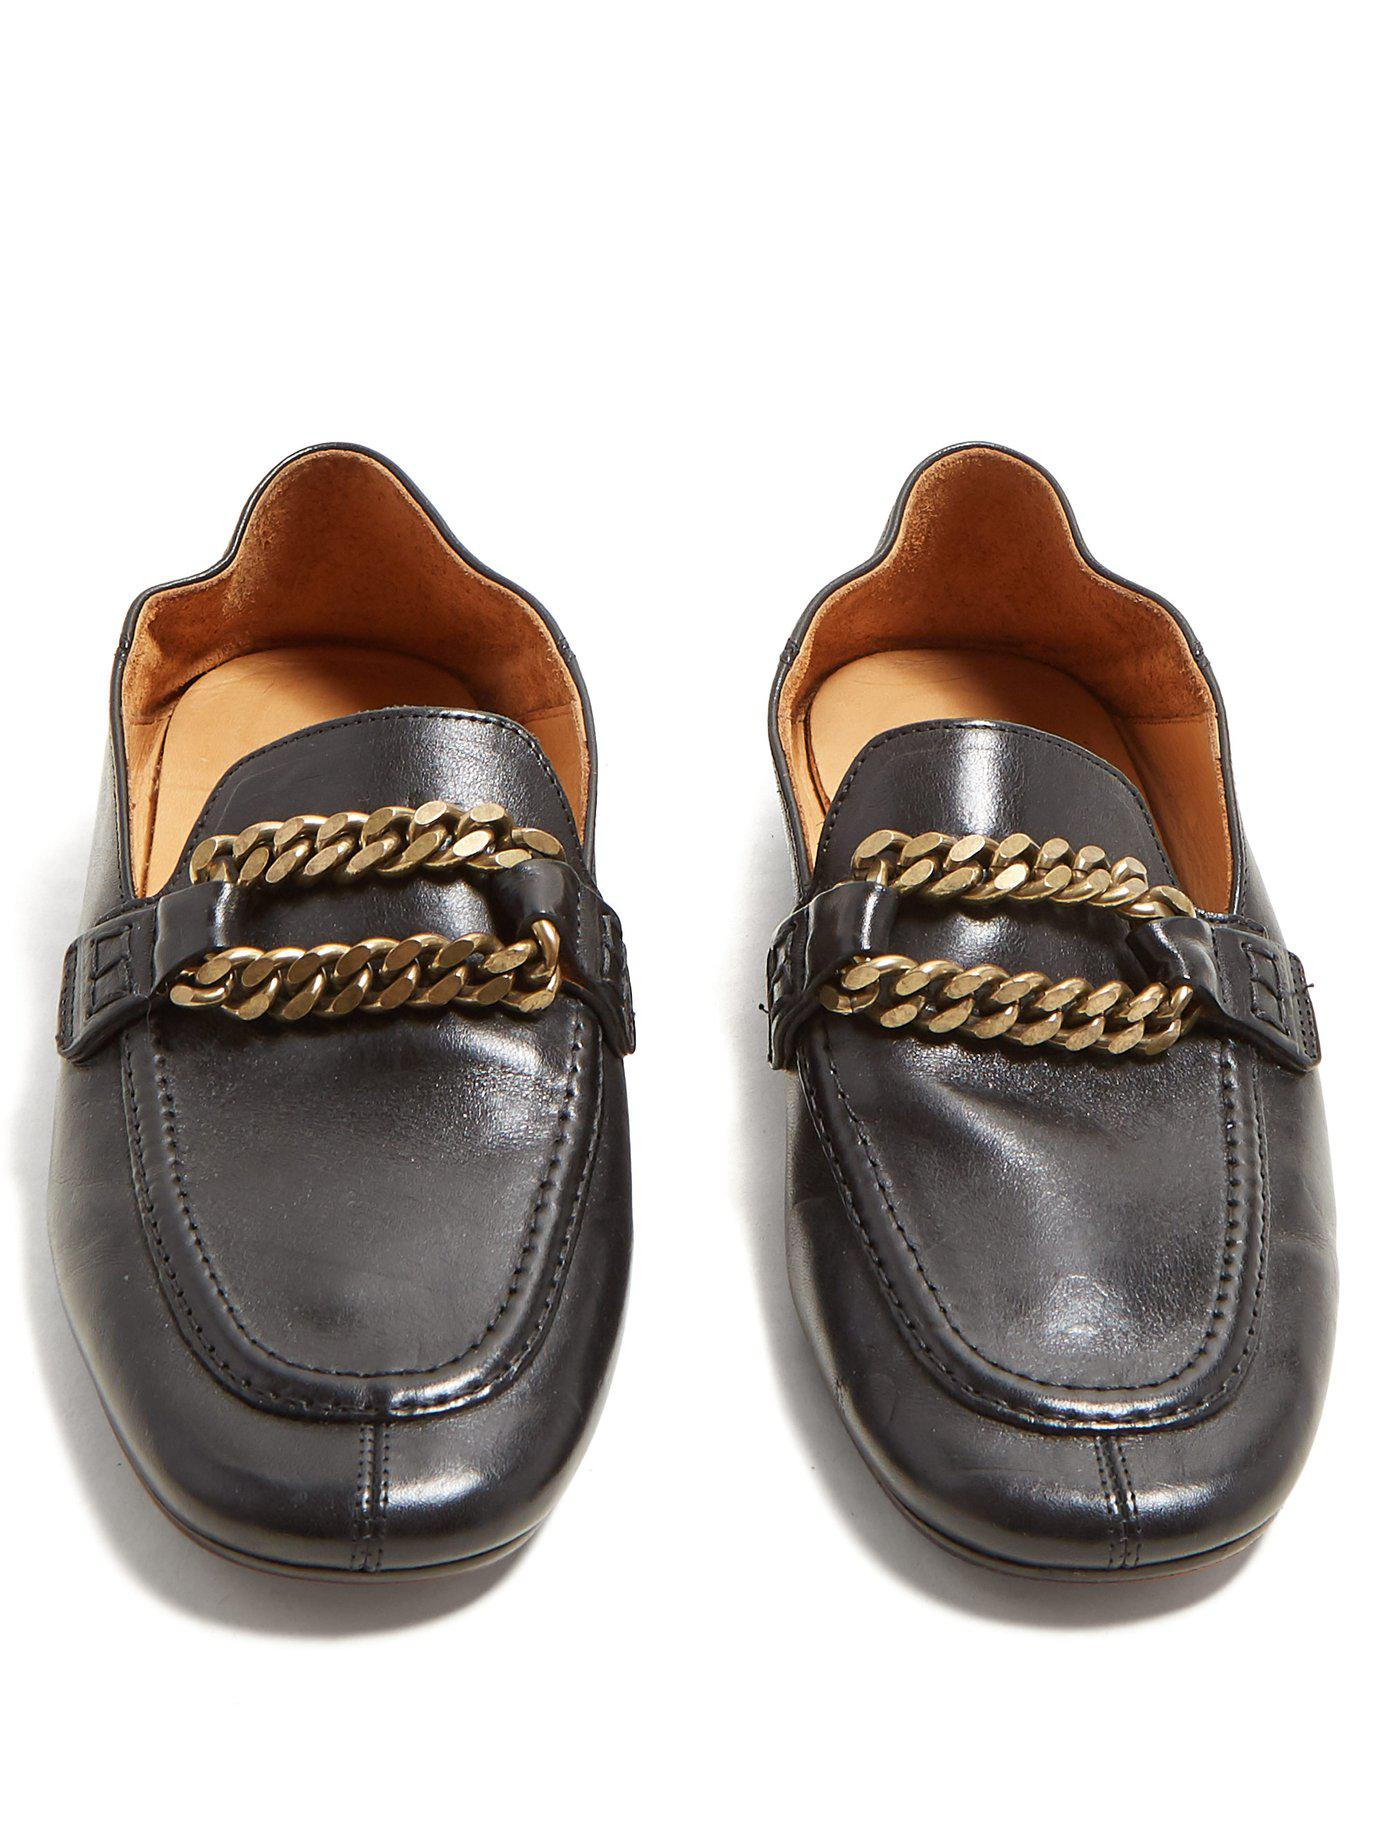 8e3aaacf723 Isabel Marant - Black Firlee Chain Trimmed Leather Loafers - Lyst. View  fullscreen